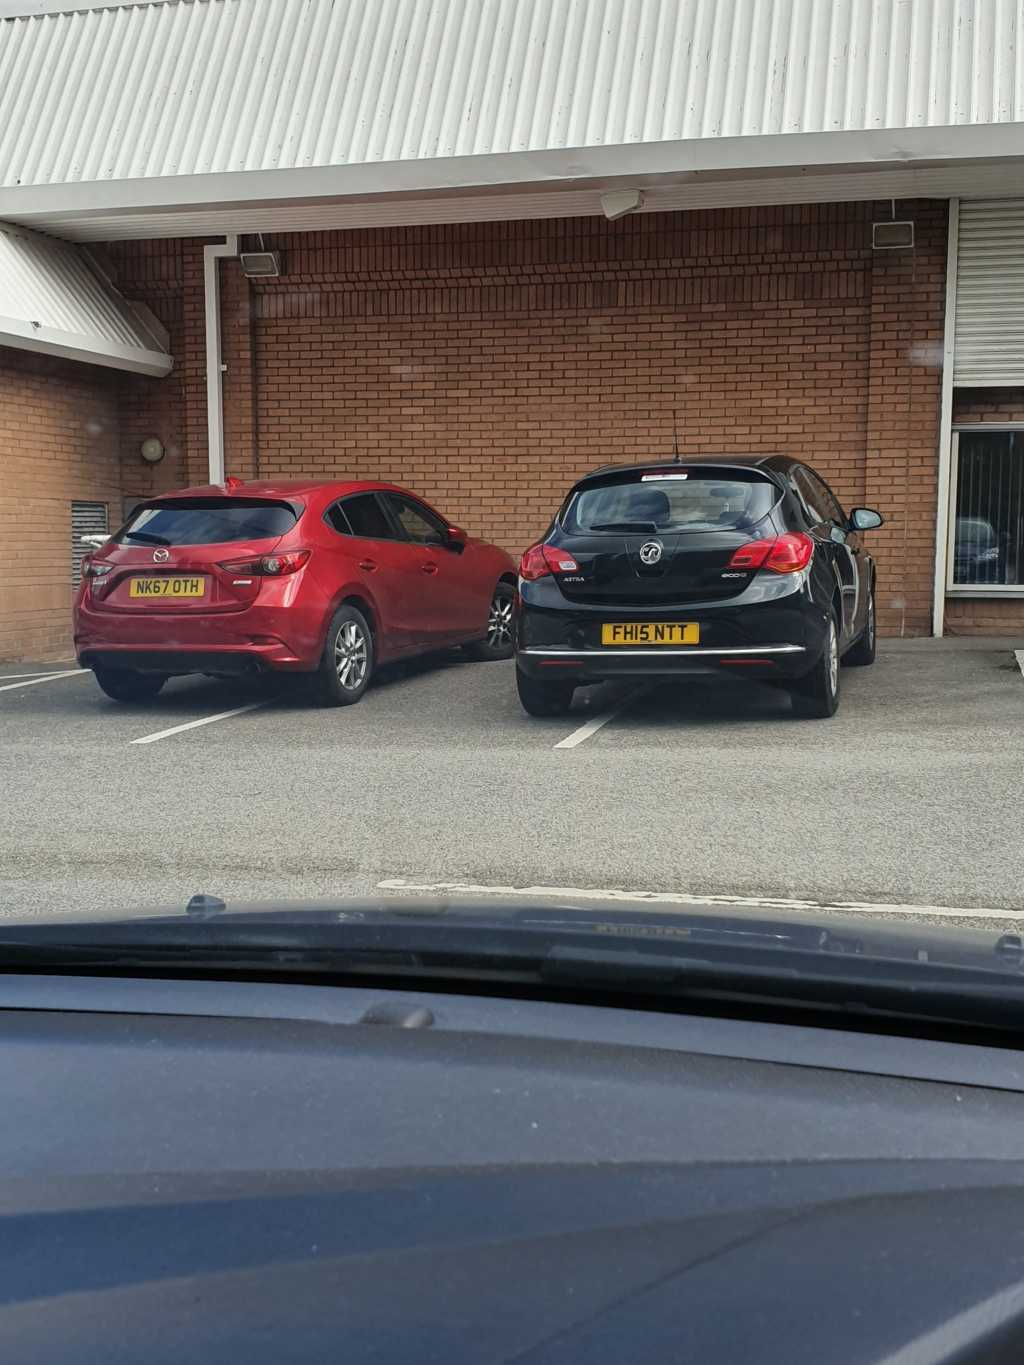 NK67 OTH & FH15 NTT is a Selfish Parker